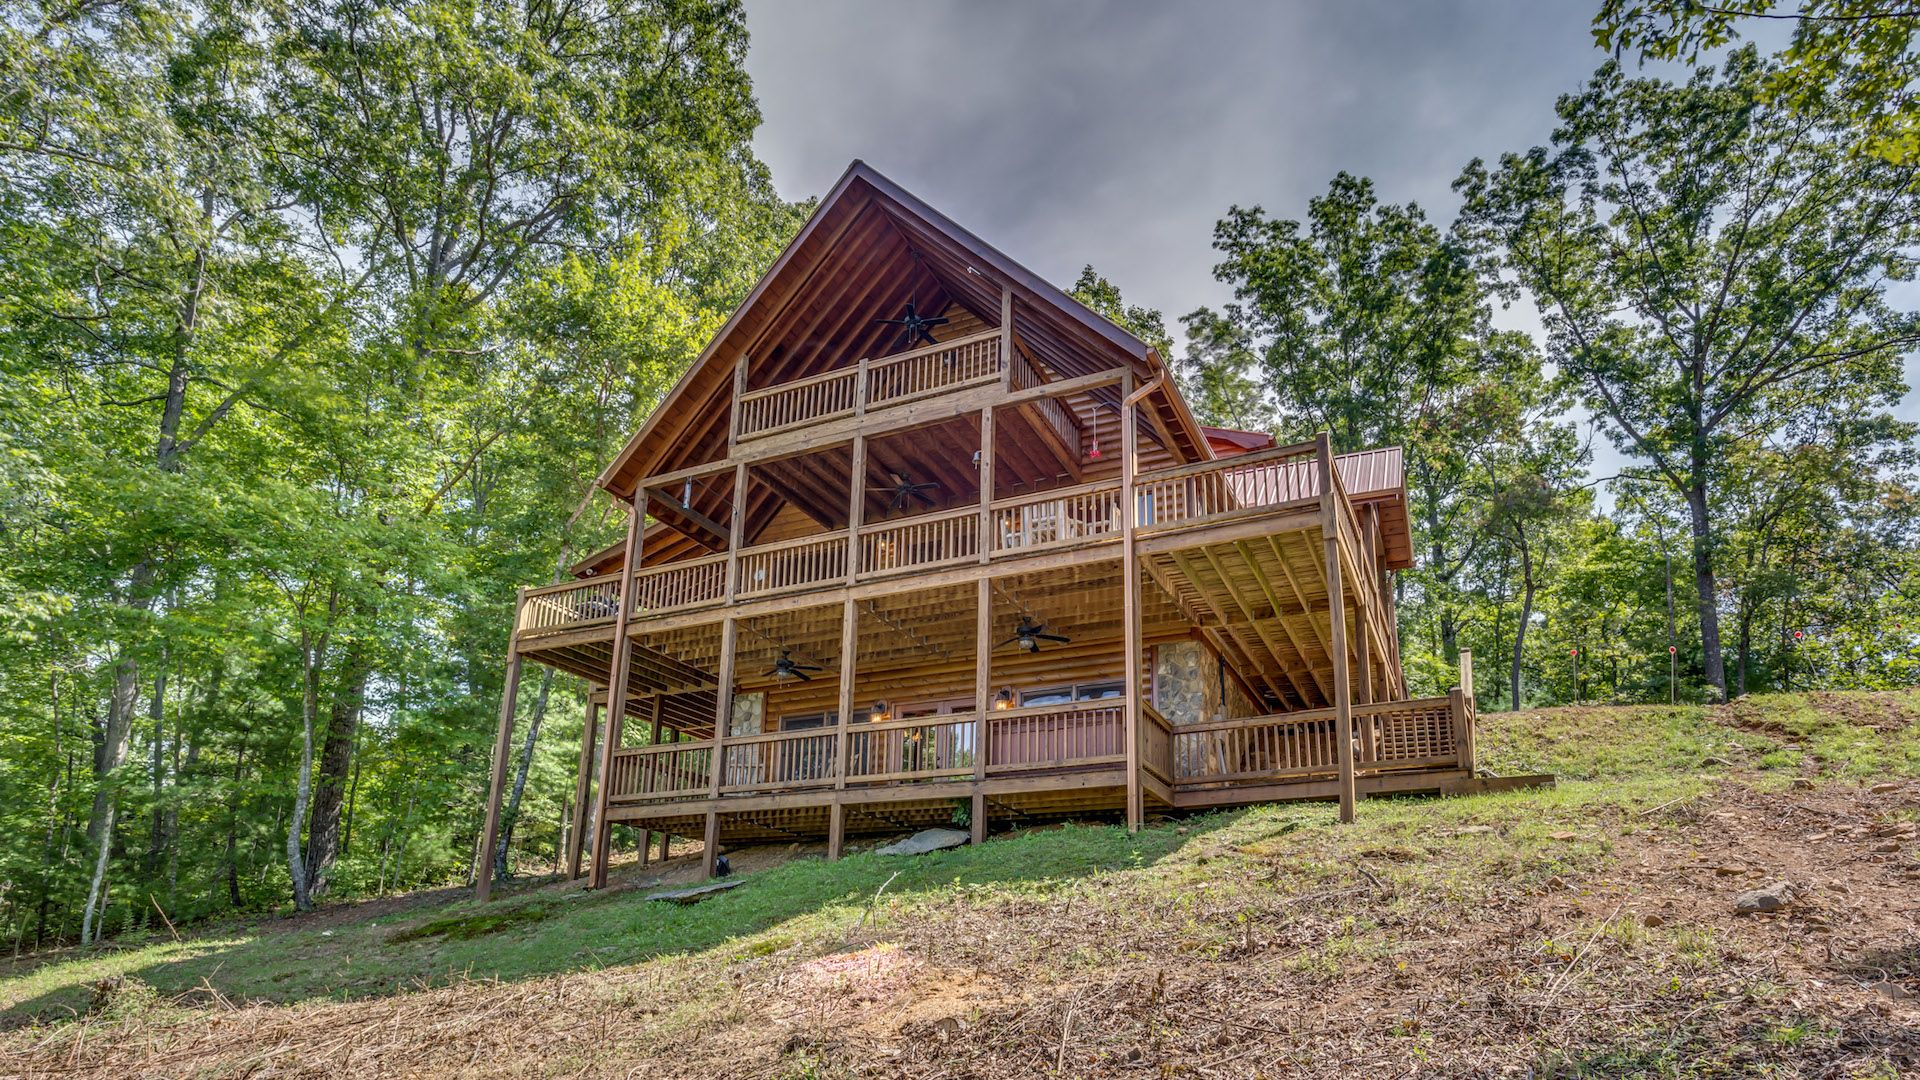 ga pin and echo ridge in top blue sweet cabin cabins lodge rentals pinterest mountain georgia rental